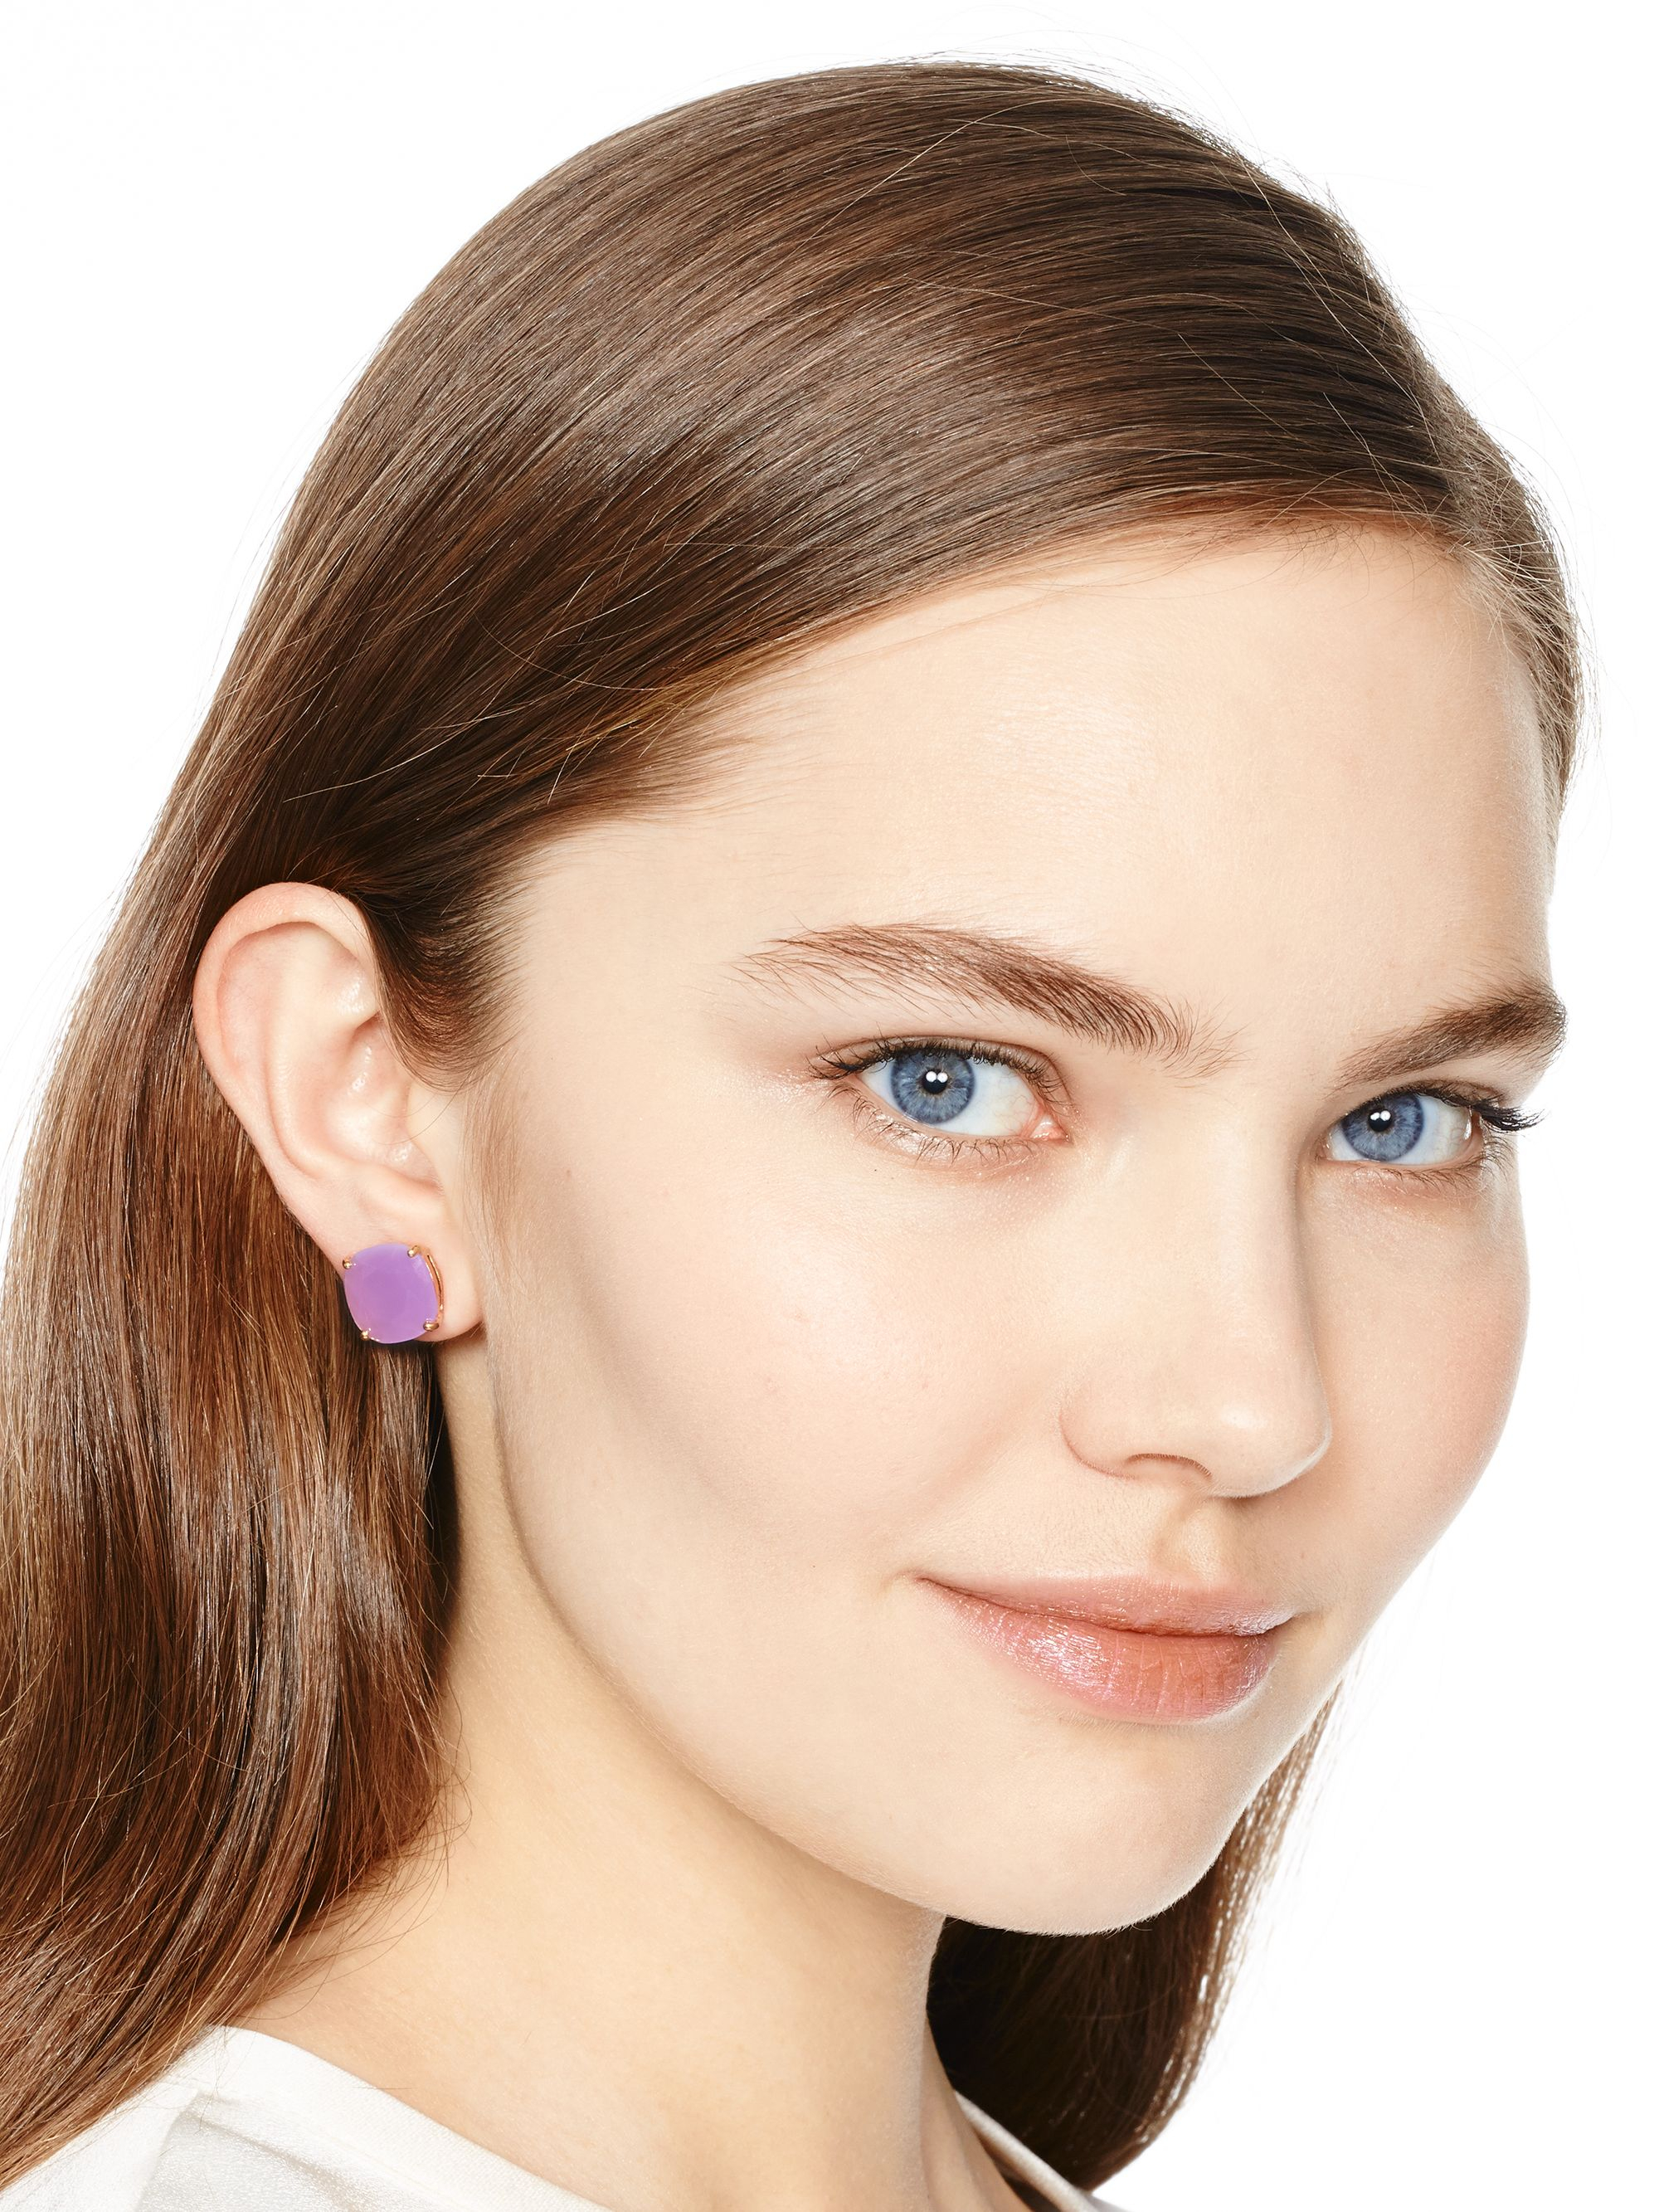 Kate Spade New York Small Square Stud Earrings 0fWd5quJ